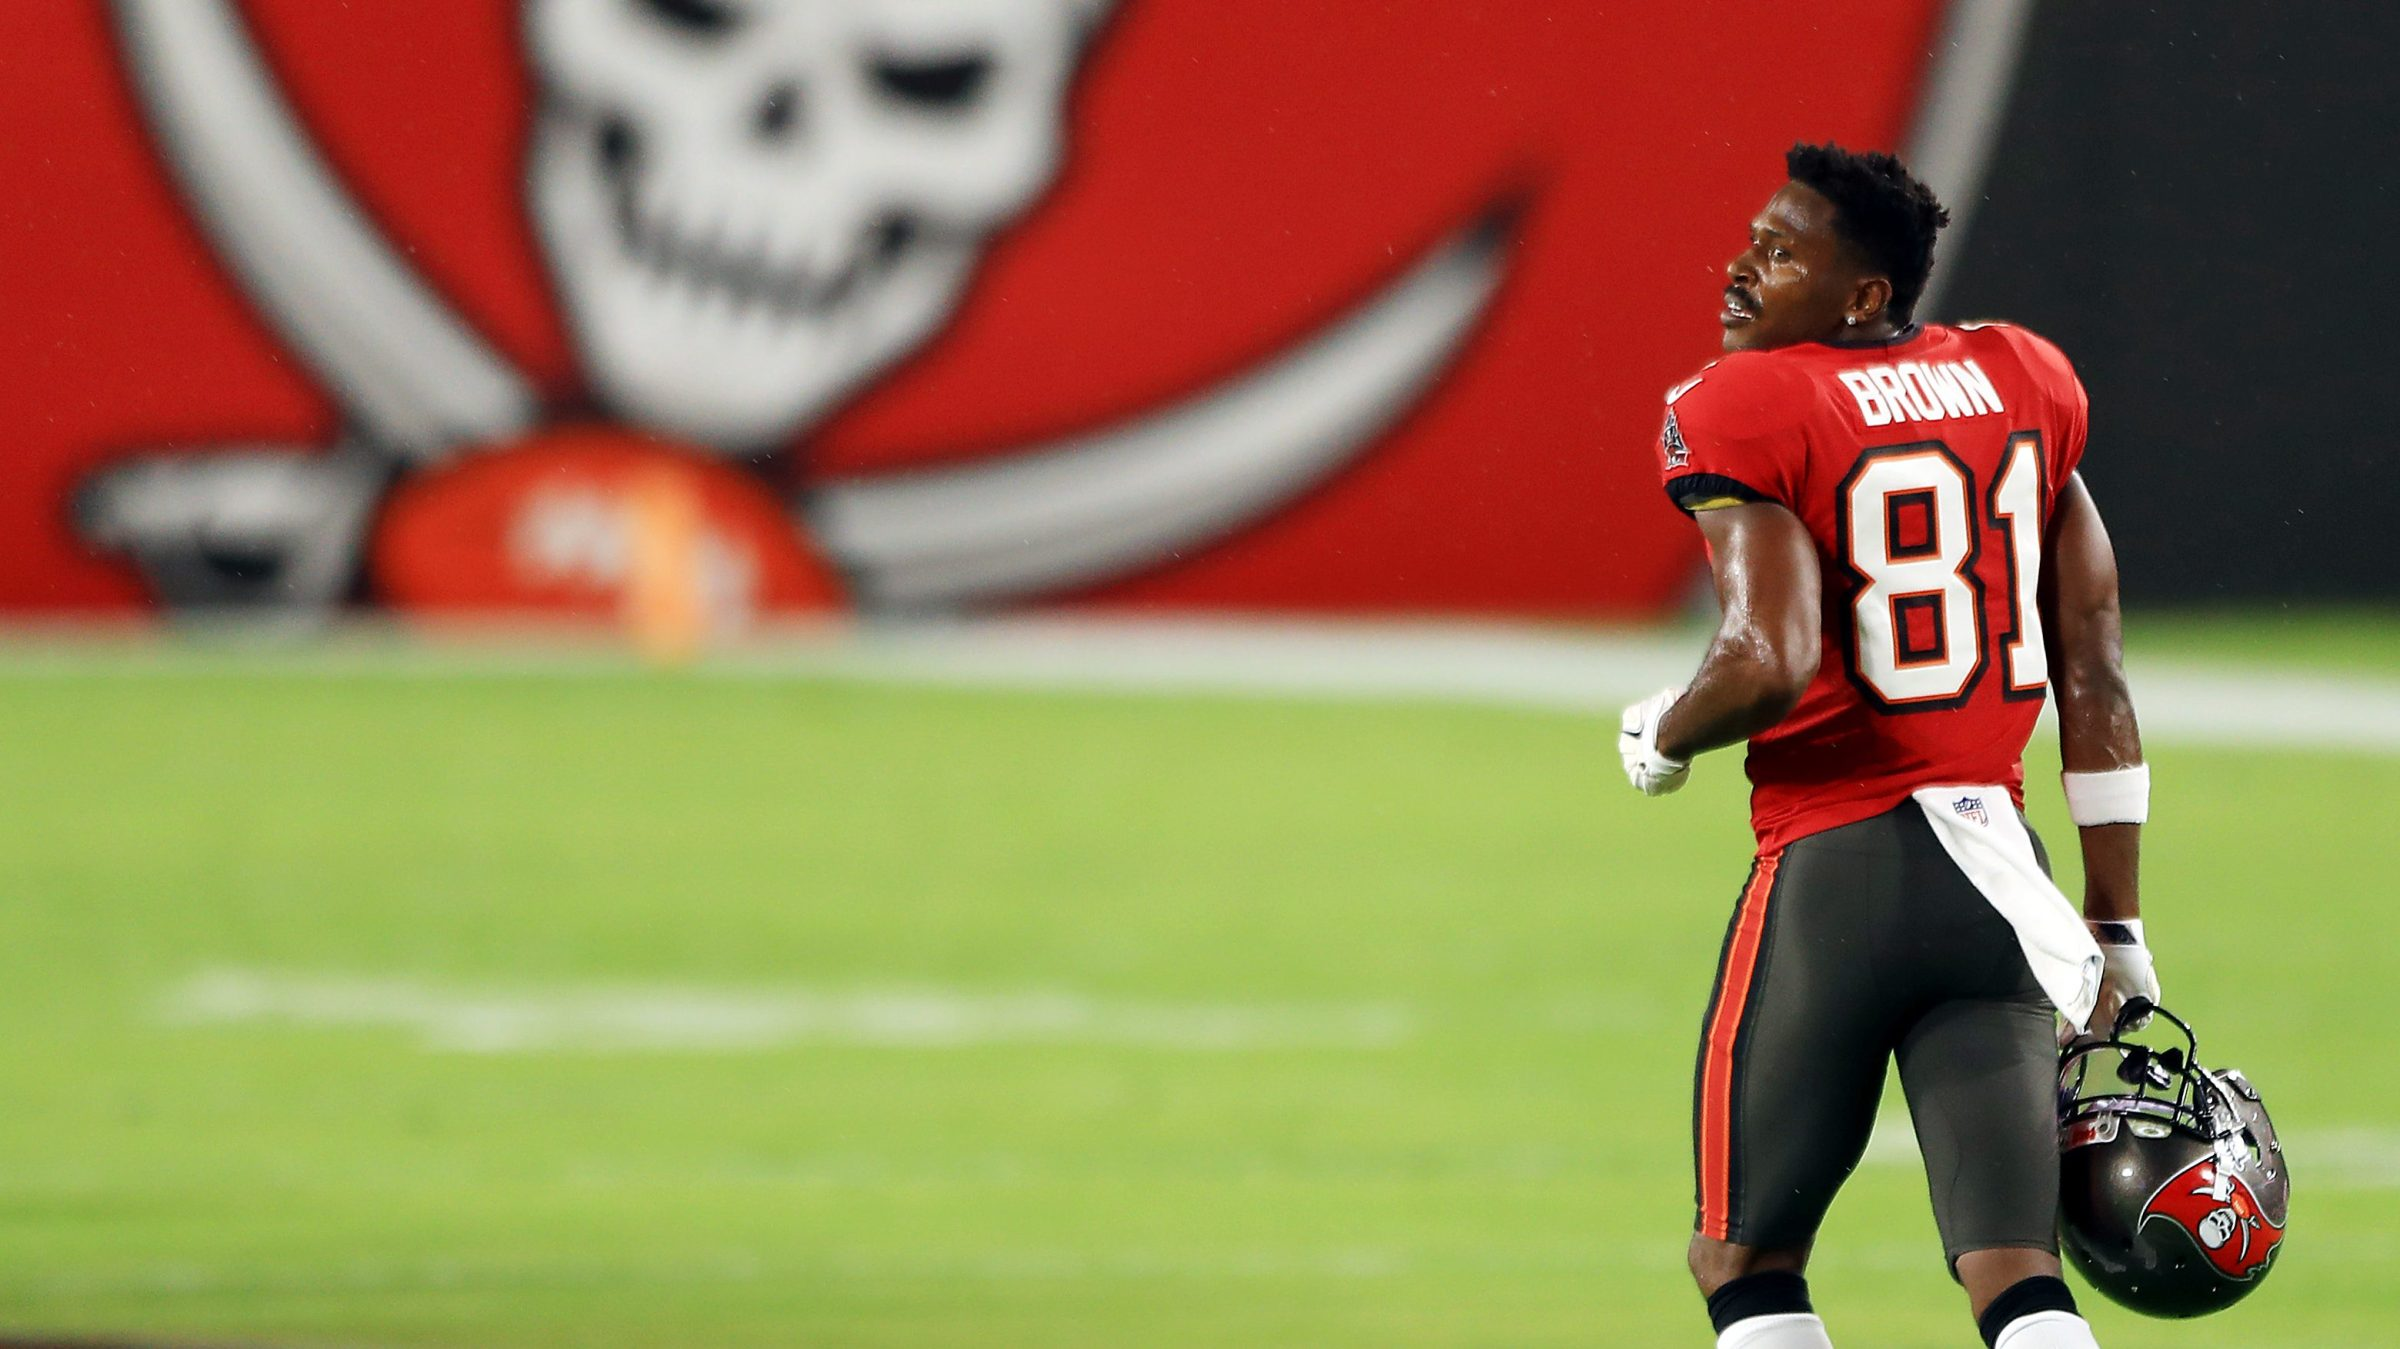 Antonio Brown of the Tampa Bay Buccaneers jogs on the field before the game against the New Orleans Saints at Raymond James Stadium on November 08, 2020 in Tampa, Florida.